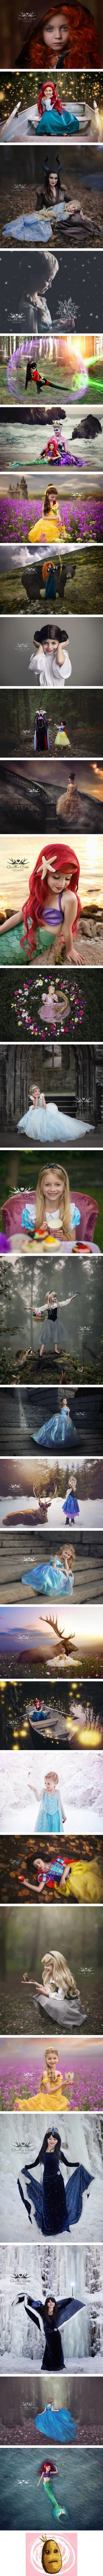 This 7 year old and her mom have nailed the Disney dress up game !